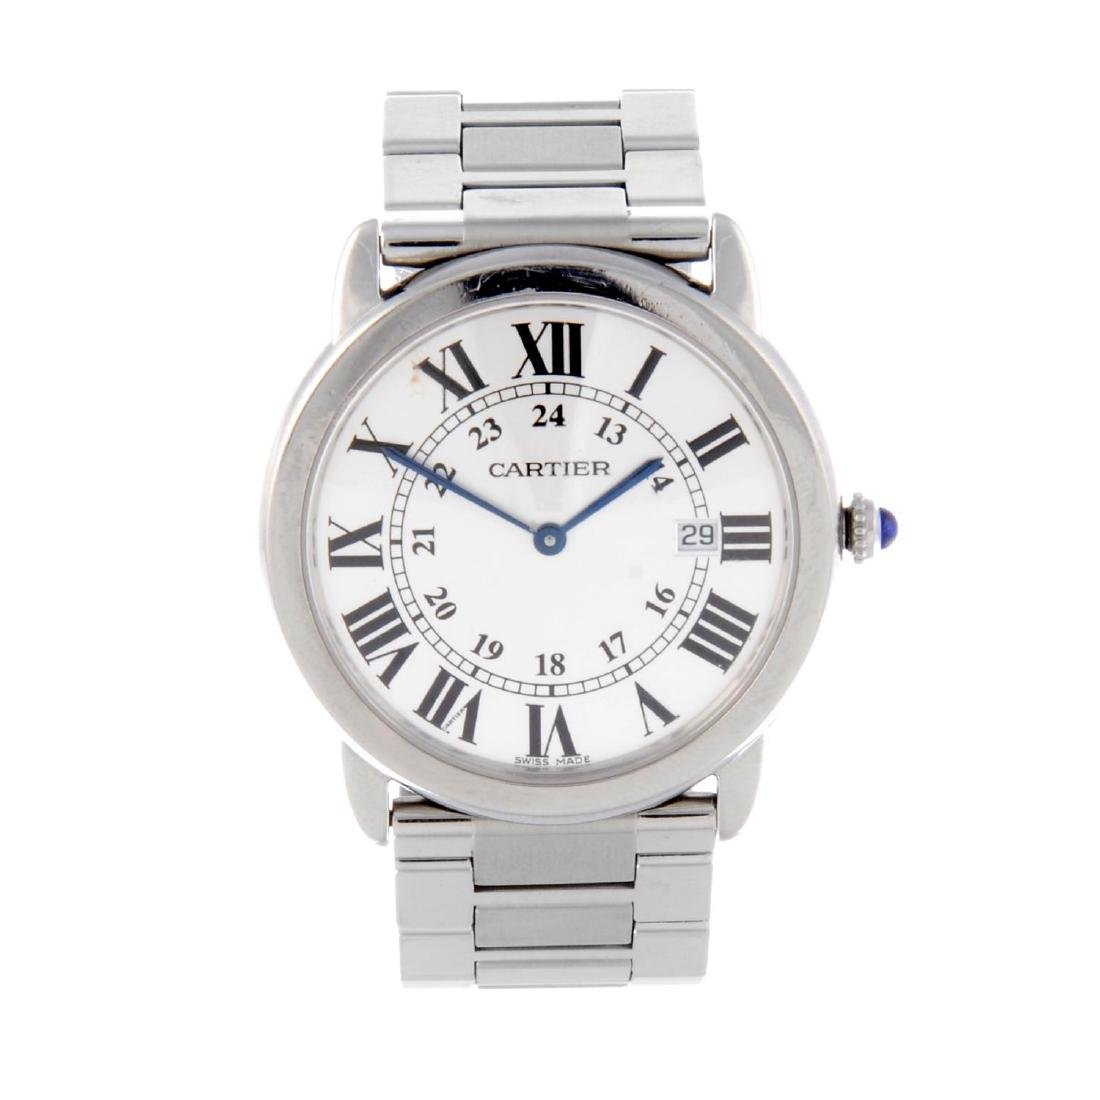 CARTIER - a Ronde Solo bracelet watch. Stainless steel